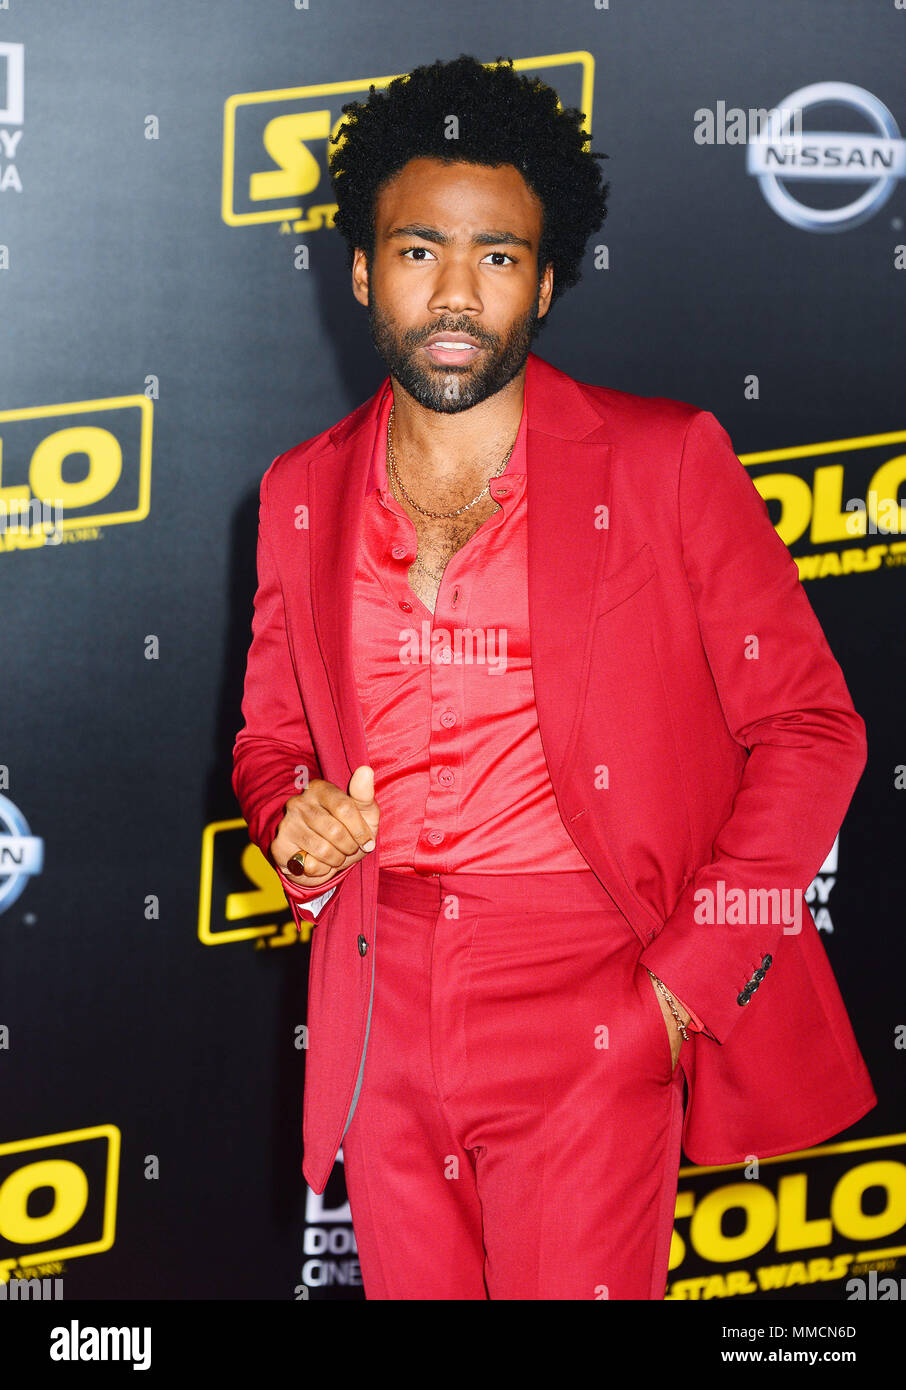 Los Angeles, USA. 10th May, 2018. Donald Glover attends the premiere of Disney Pictures and Lucasfilm's 'Solo: A Star Wars Story' on May 10, 2018 in Hollywood, California. Credit: Tsuni / USA/Alamy Live News - Stock Image